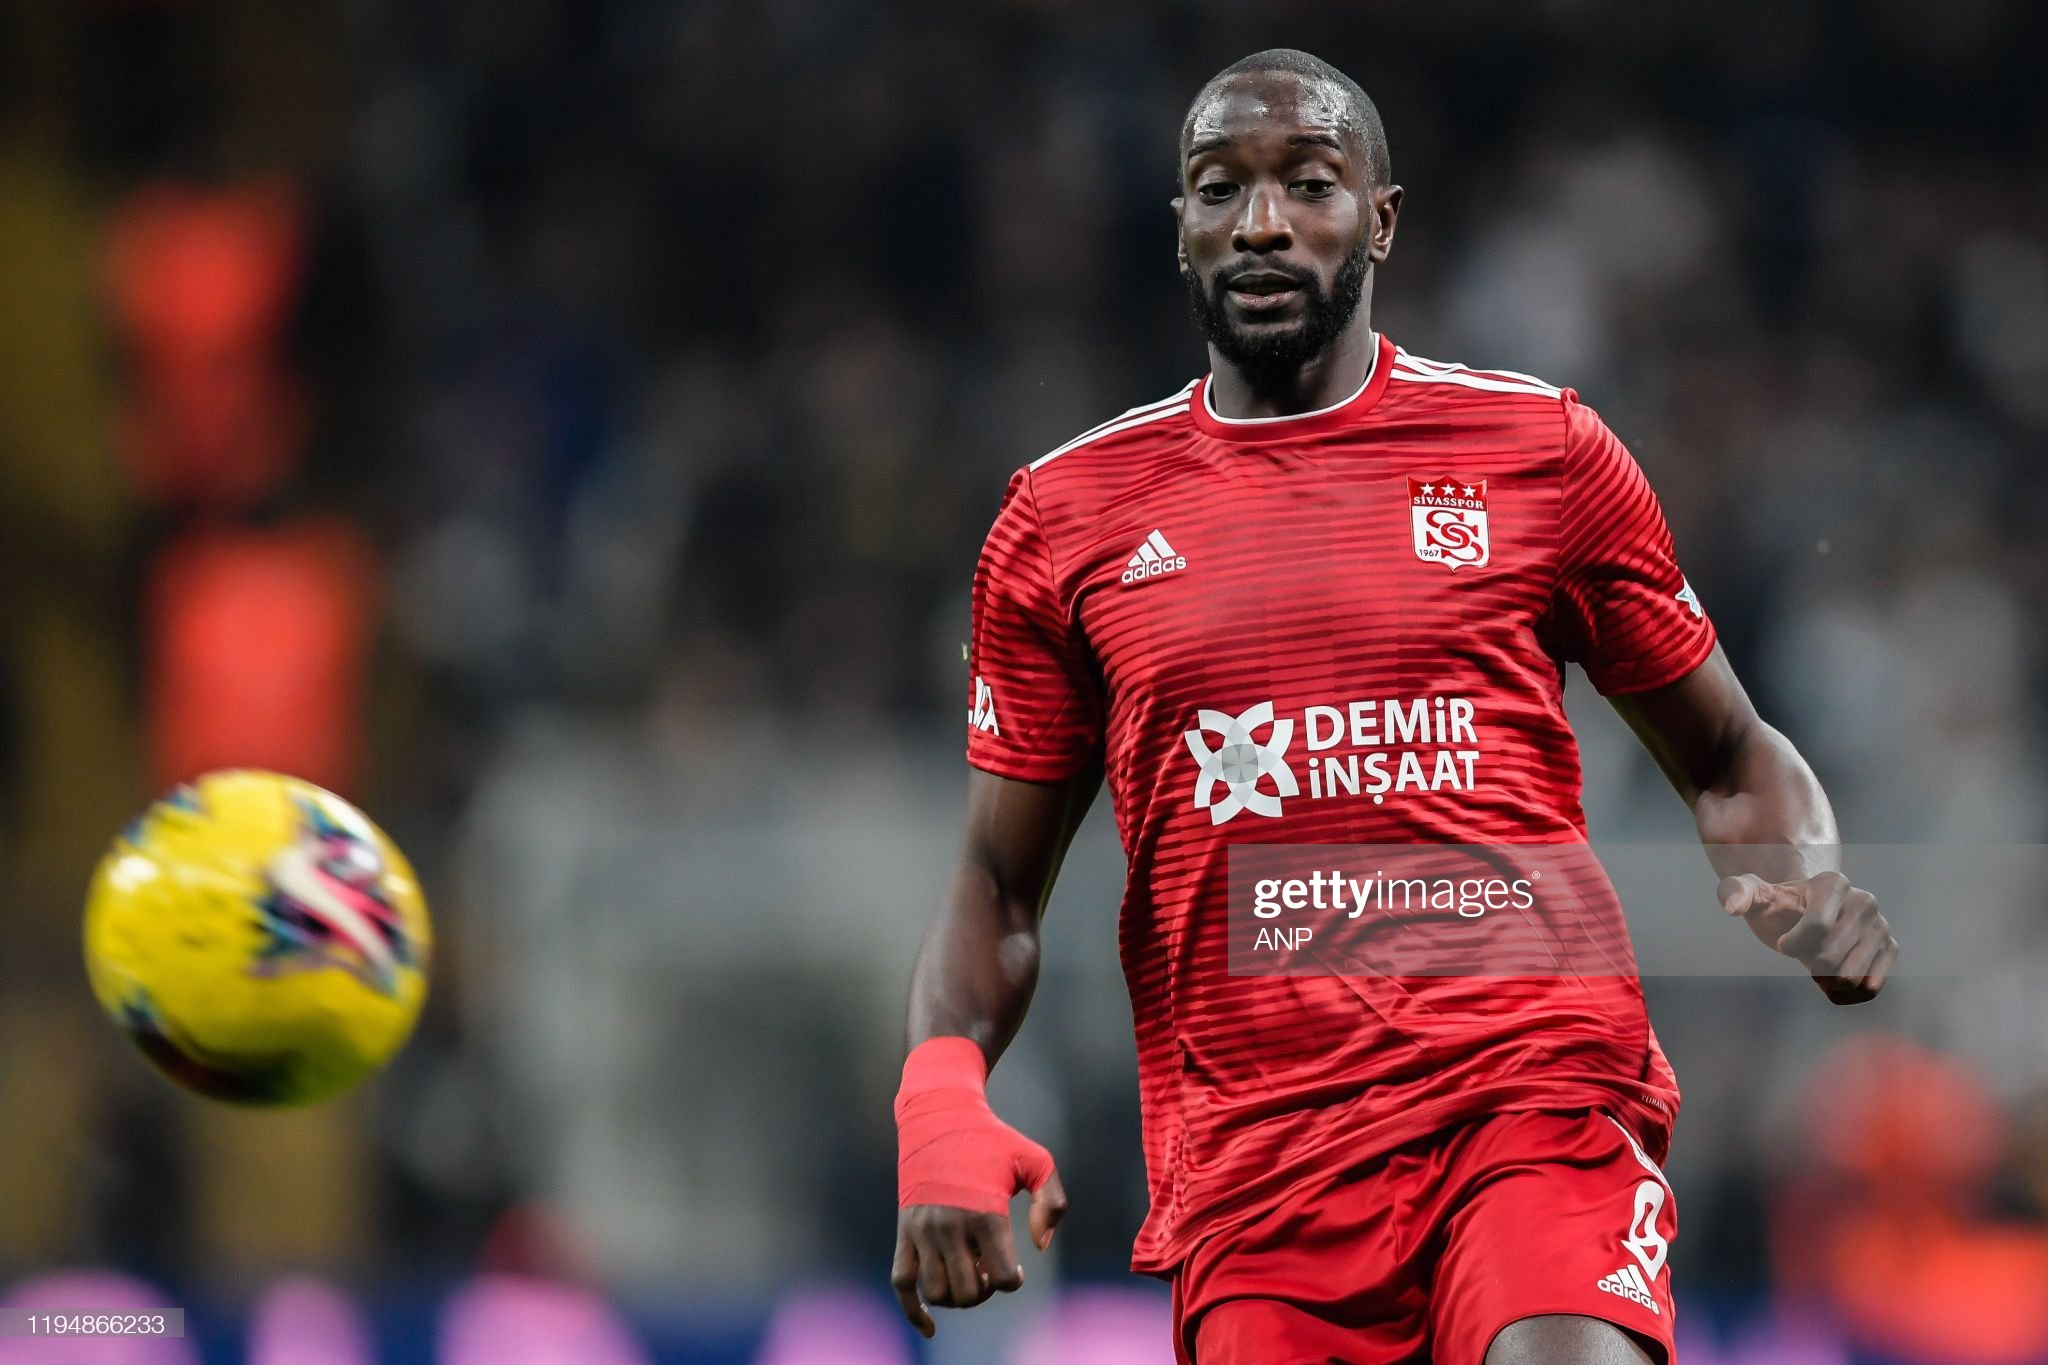 Sivasspor v Denizlispor Preview, prediction and odds